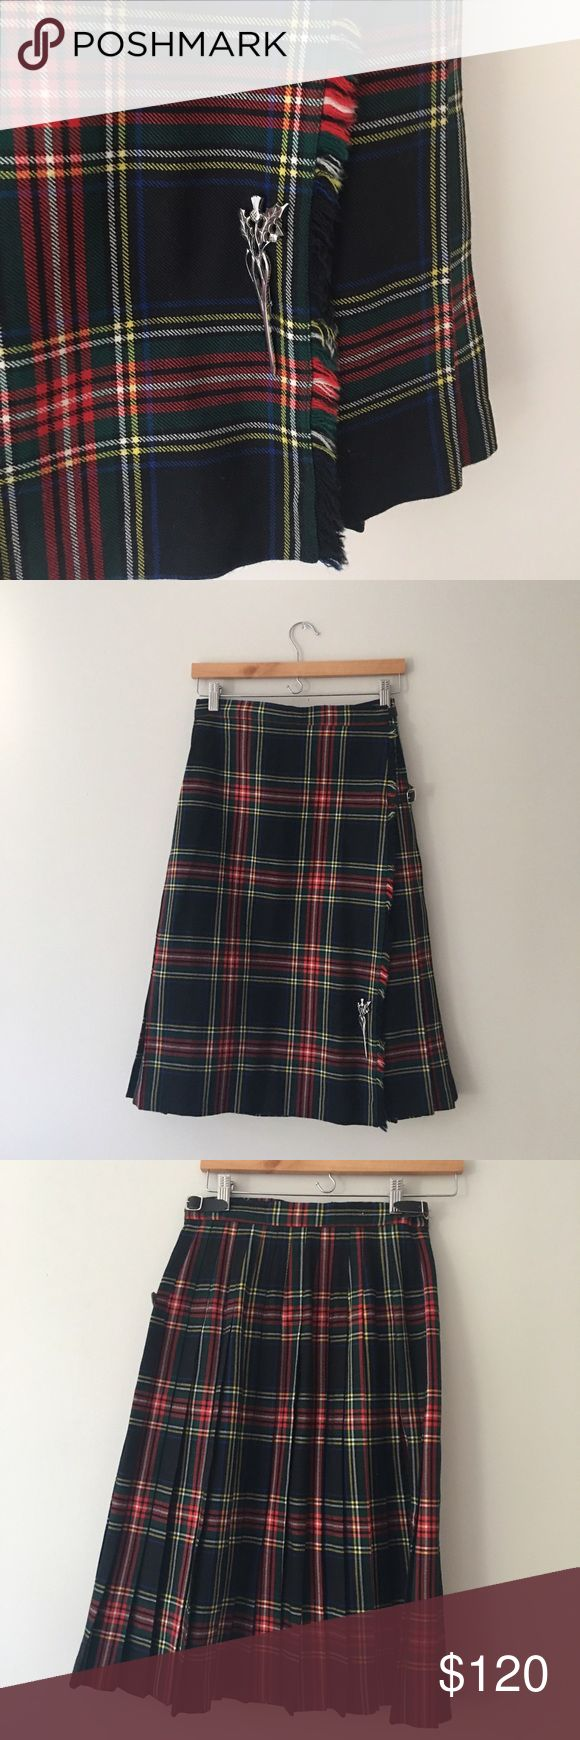 Brooks Brothers Black Stewart Tartan Skirt Stunning 100% wool Black Stewart tartan plaid skirt by Brooks Brothers. Kilt style front with buckle straps and a gorgeous silver tone pin for closure. Pleated back with rear elastic waist for give. Made in Scotland. Size 10. NWOT. Brooks Brothers Skirts